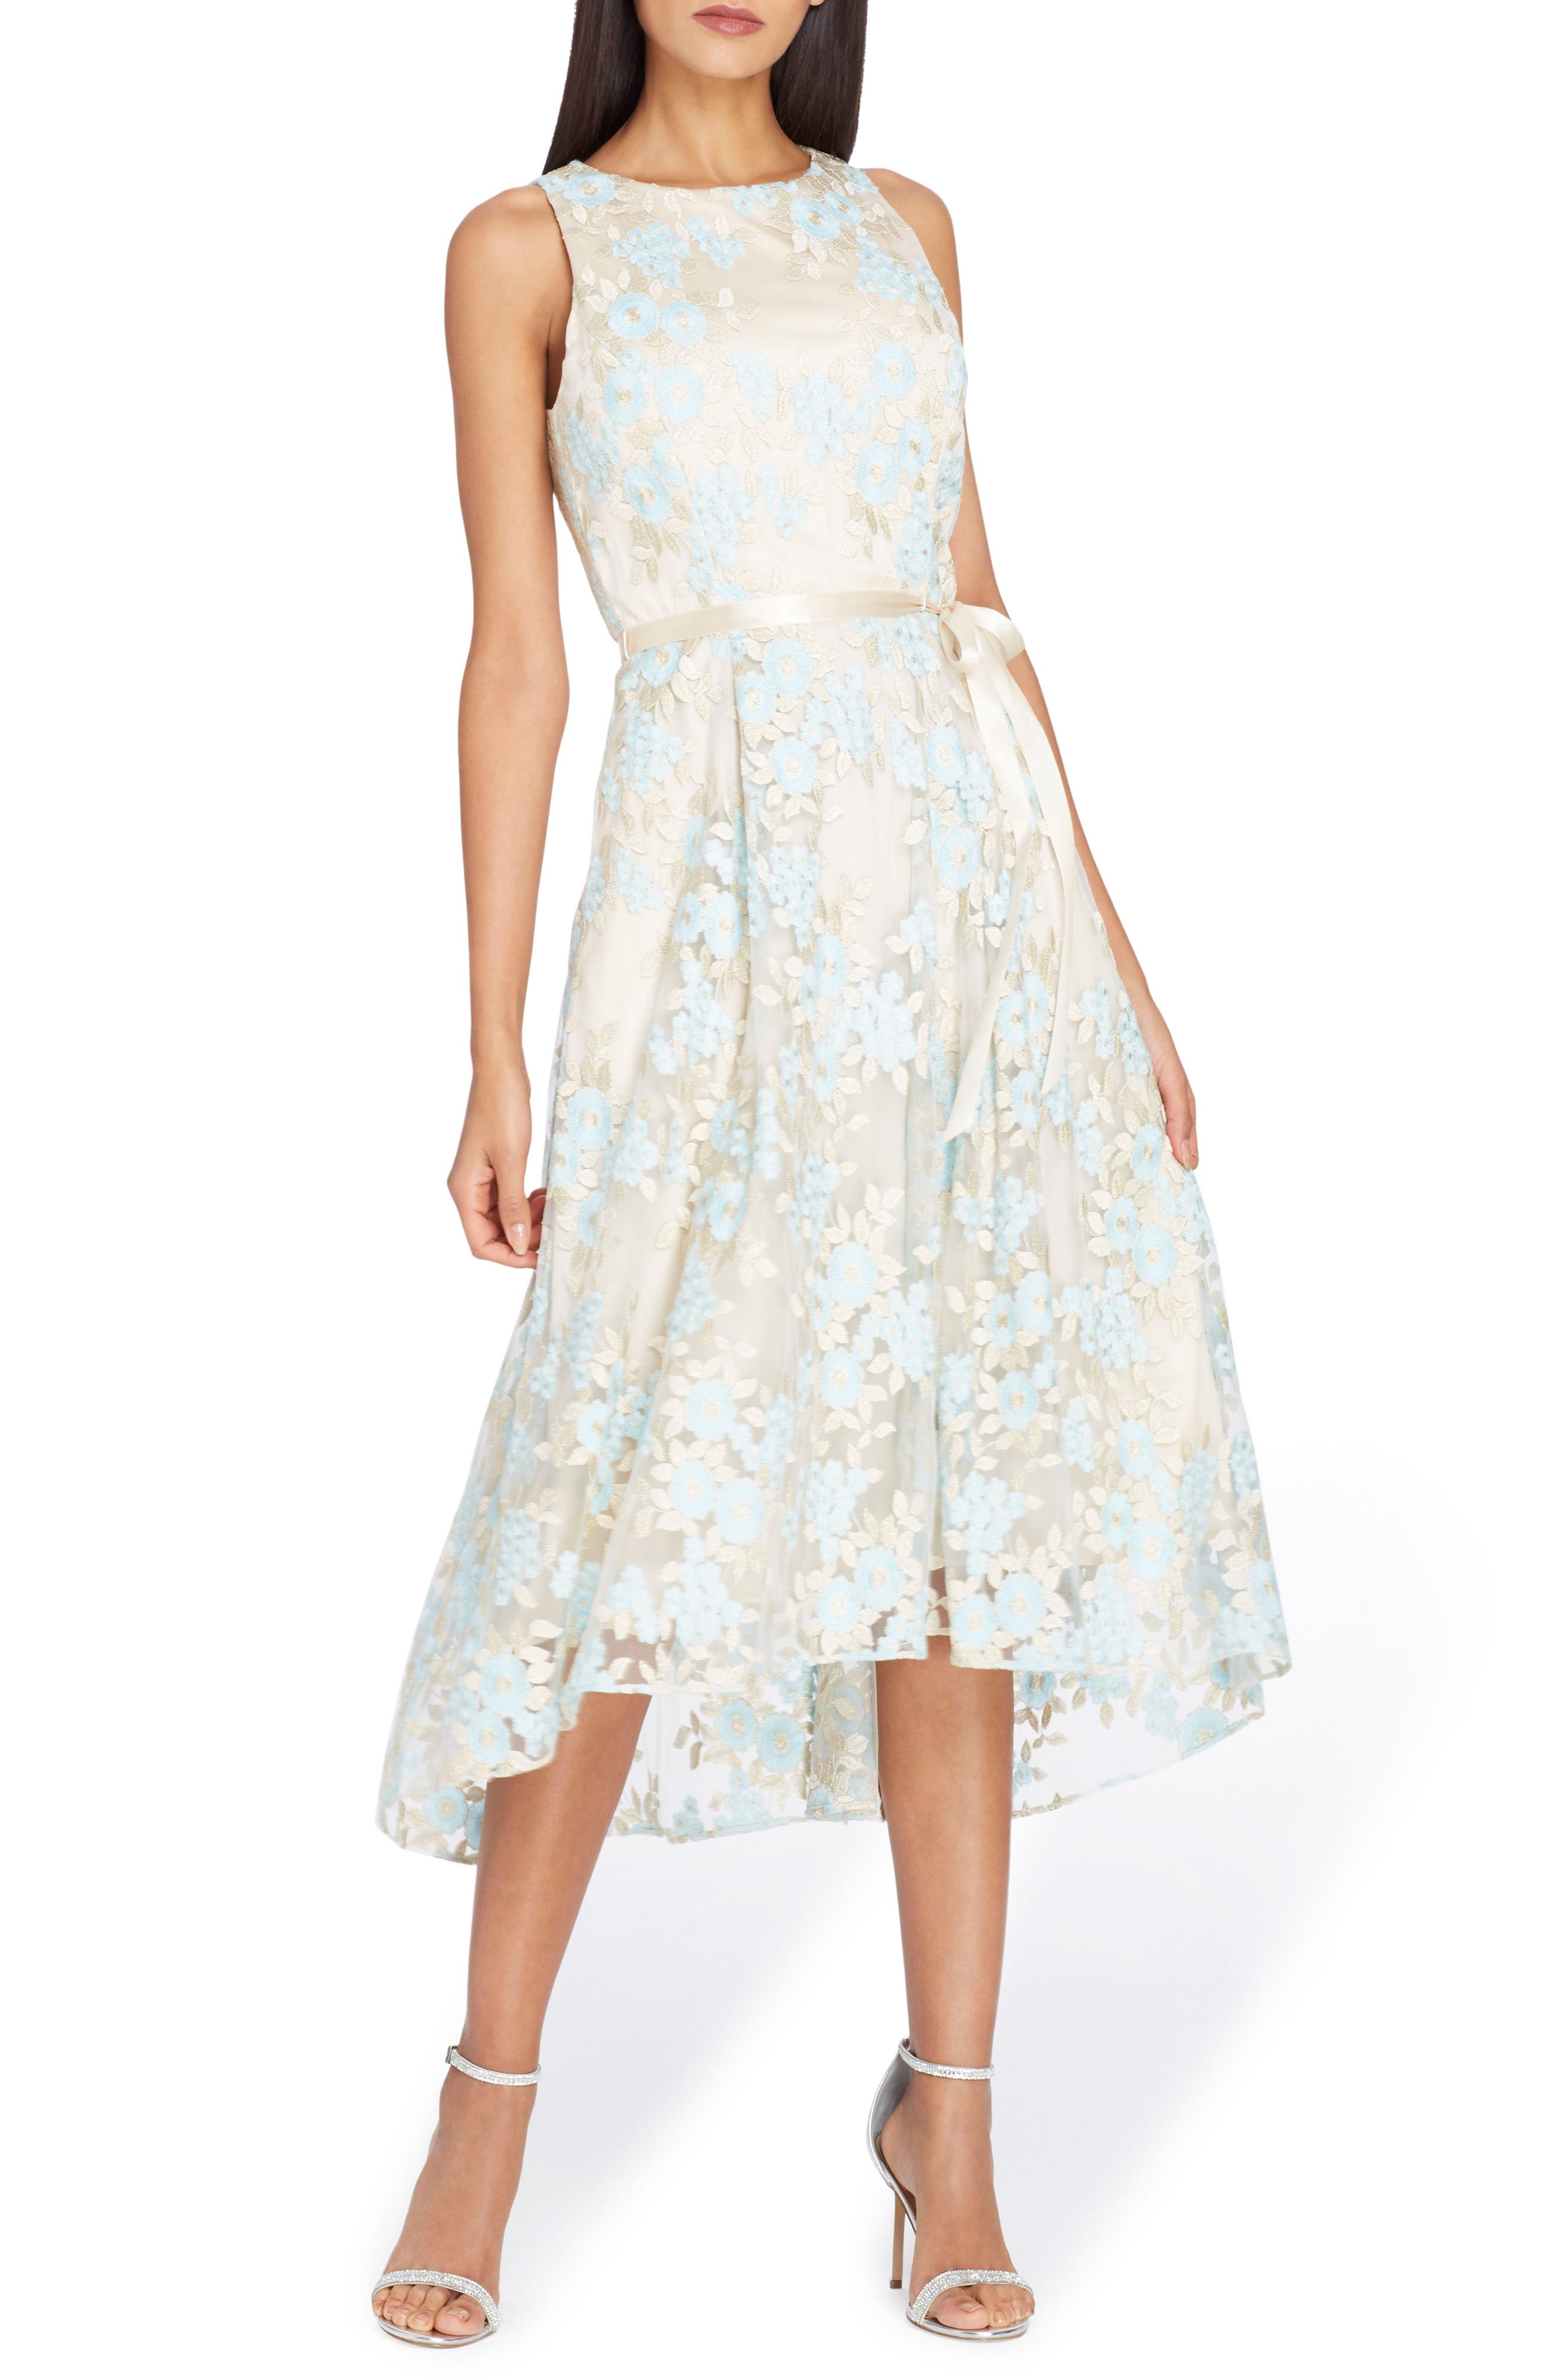 Floral Embroidered Dress,                         Main,                         color, Nude/ Ice Blue/ Gold